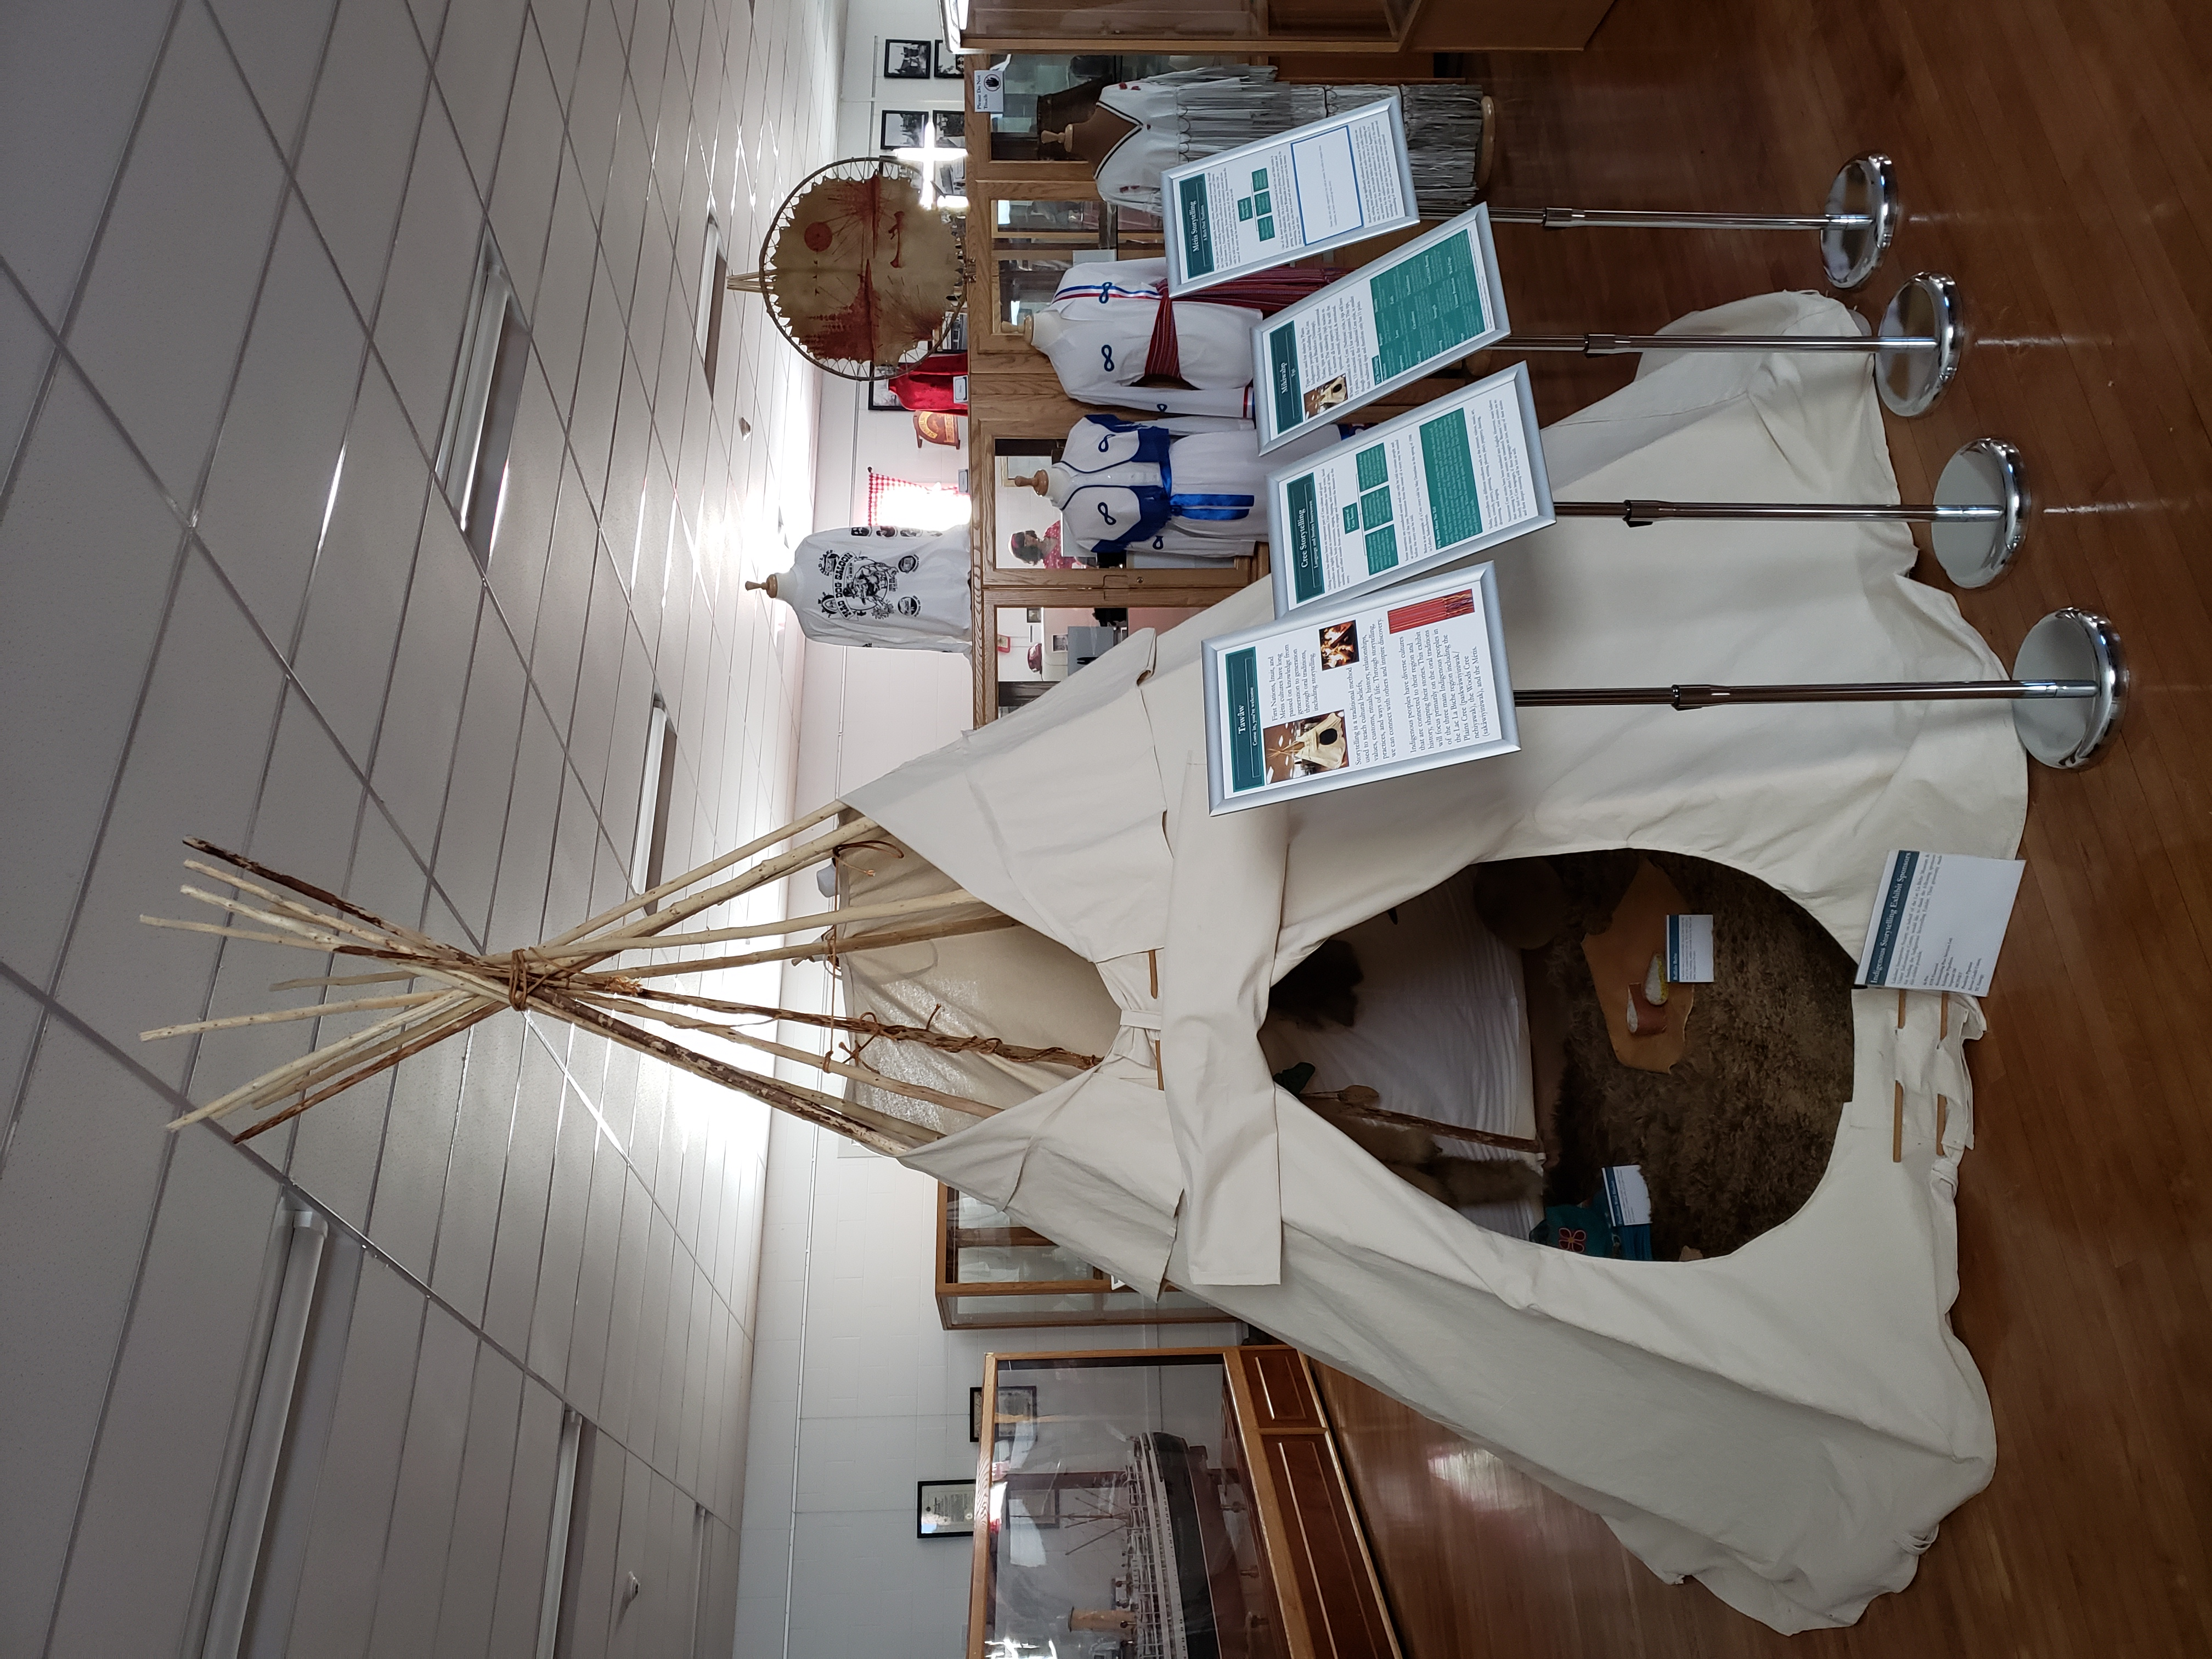 A tipi in a museum with four text panels standing in front of it